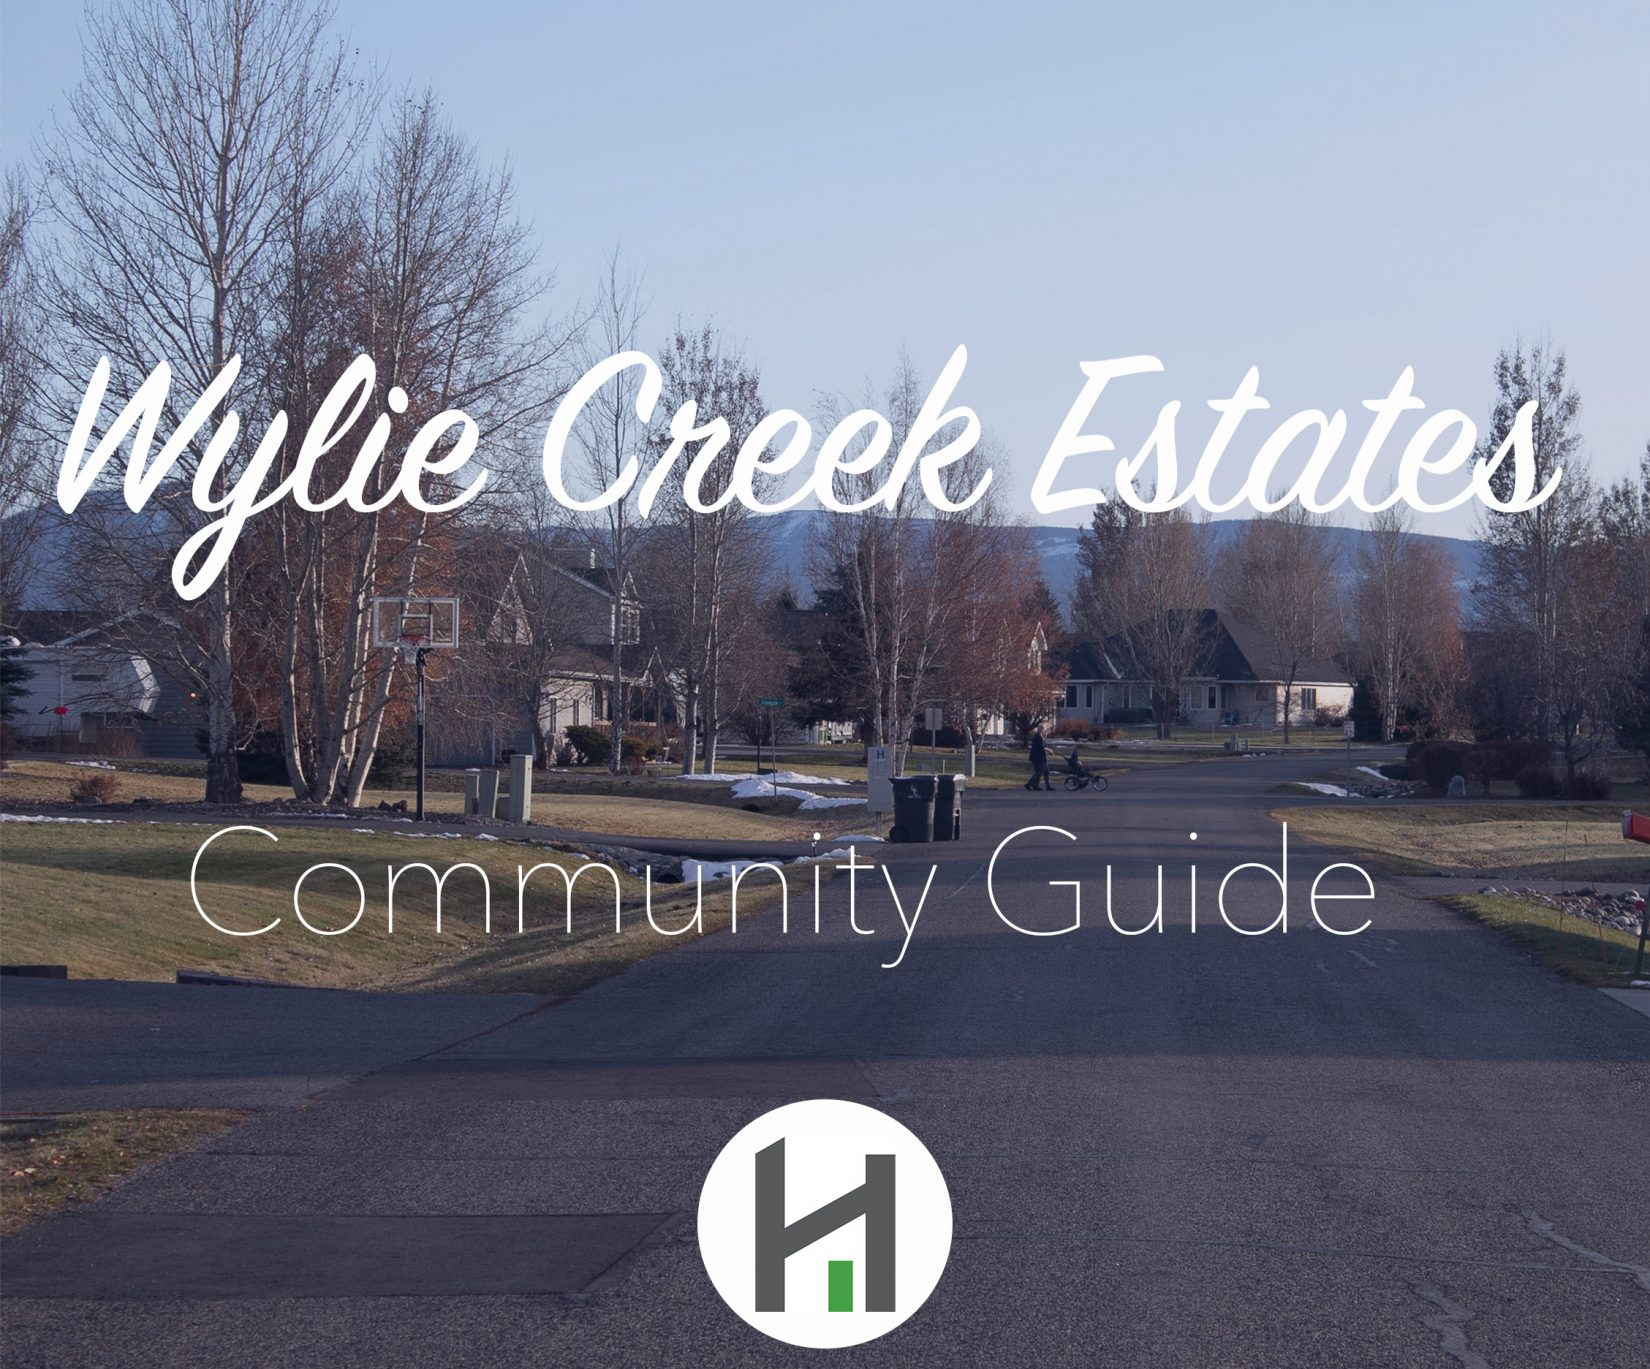 Find Wylie Creek Estates Real Estate and Homes for Sale in Bozeman MT